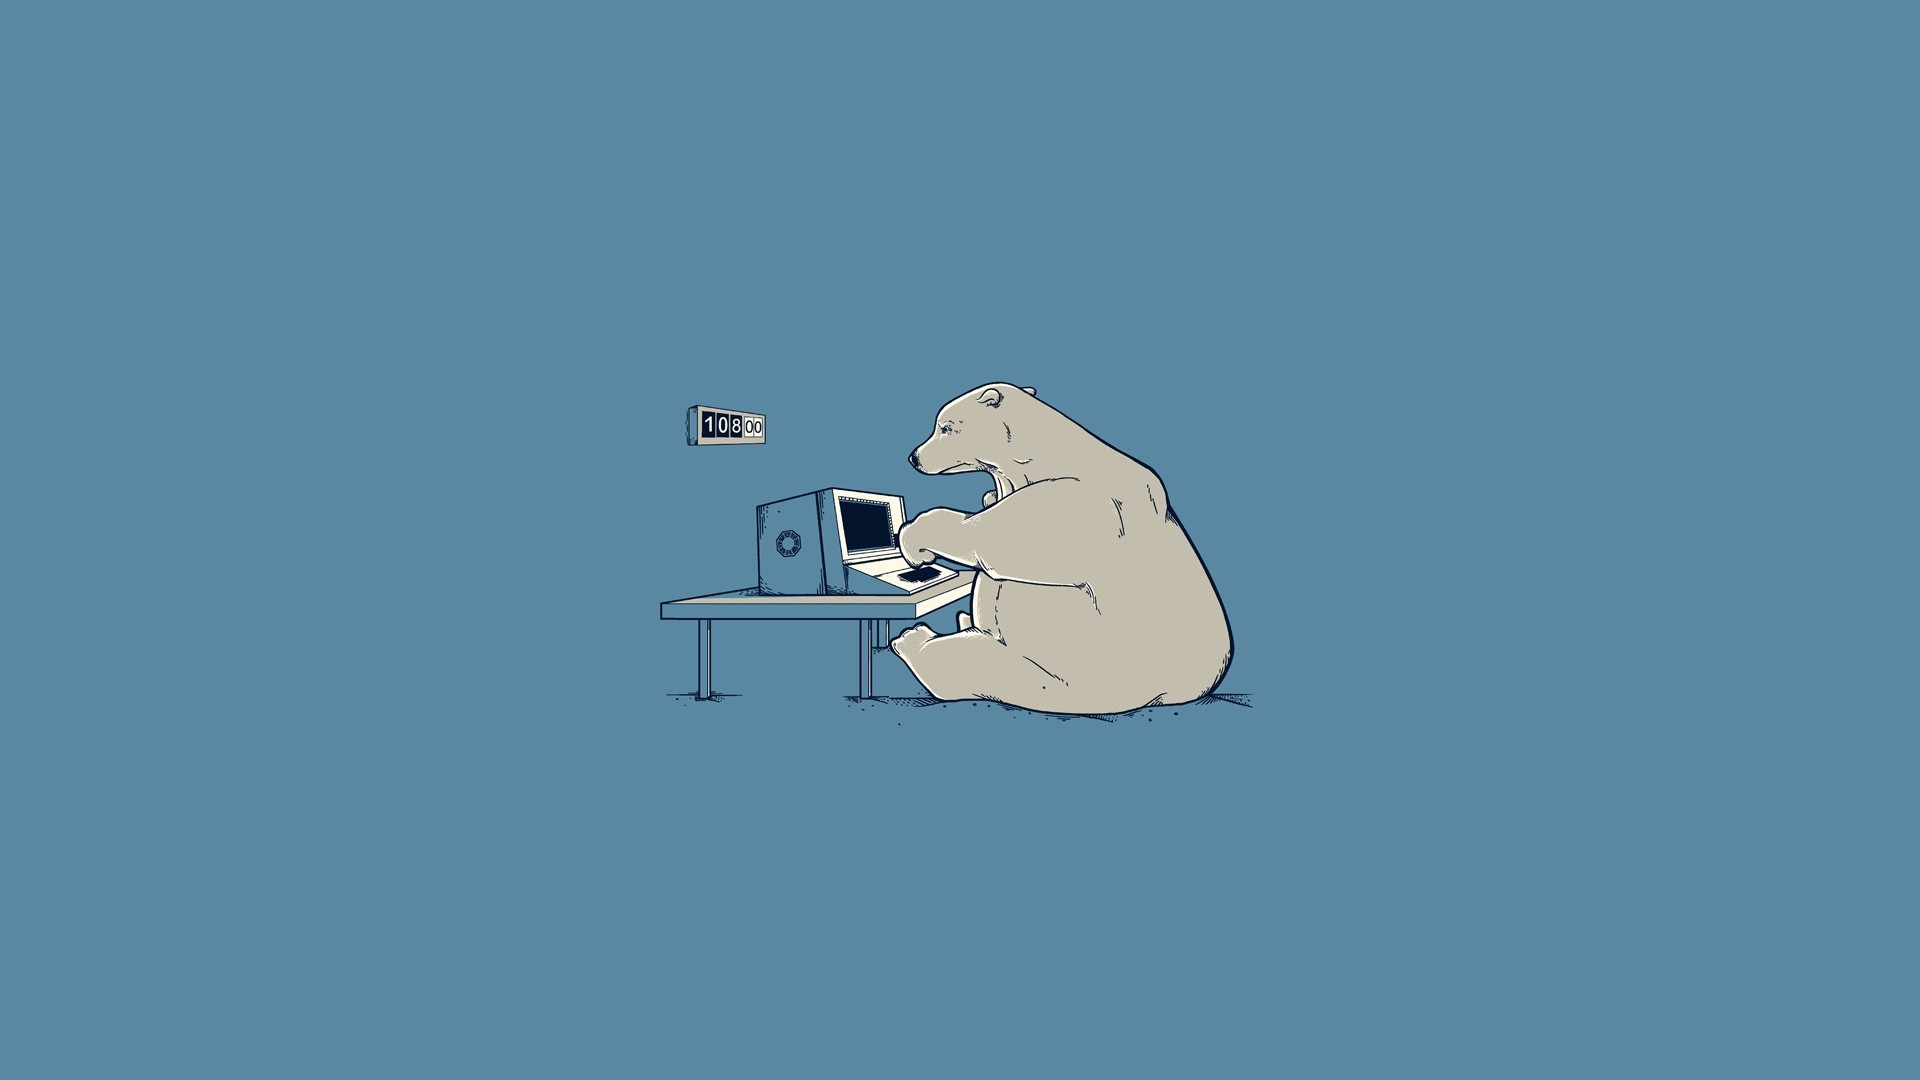 abstract, computers, solid, bears, simplistic, simple, misplaced